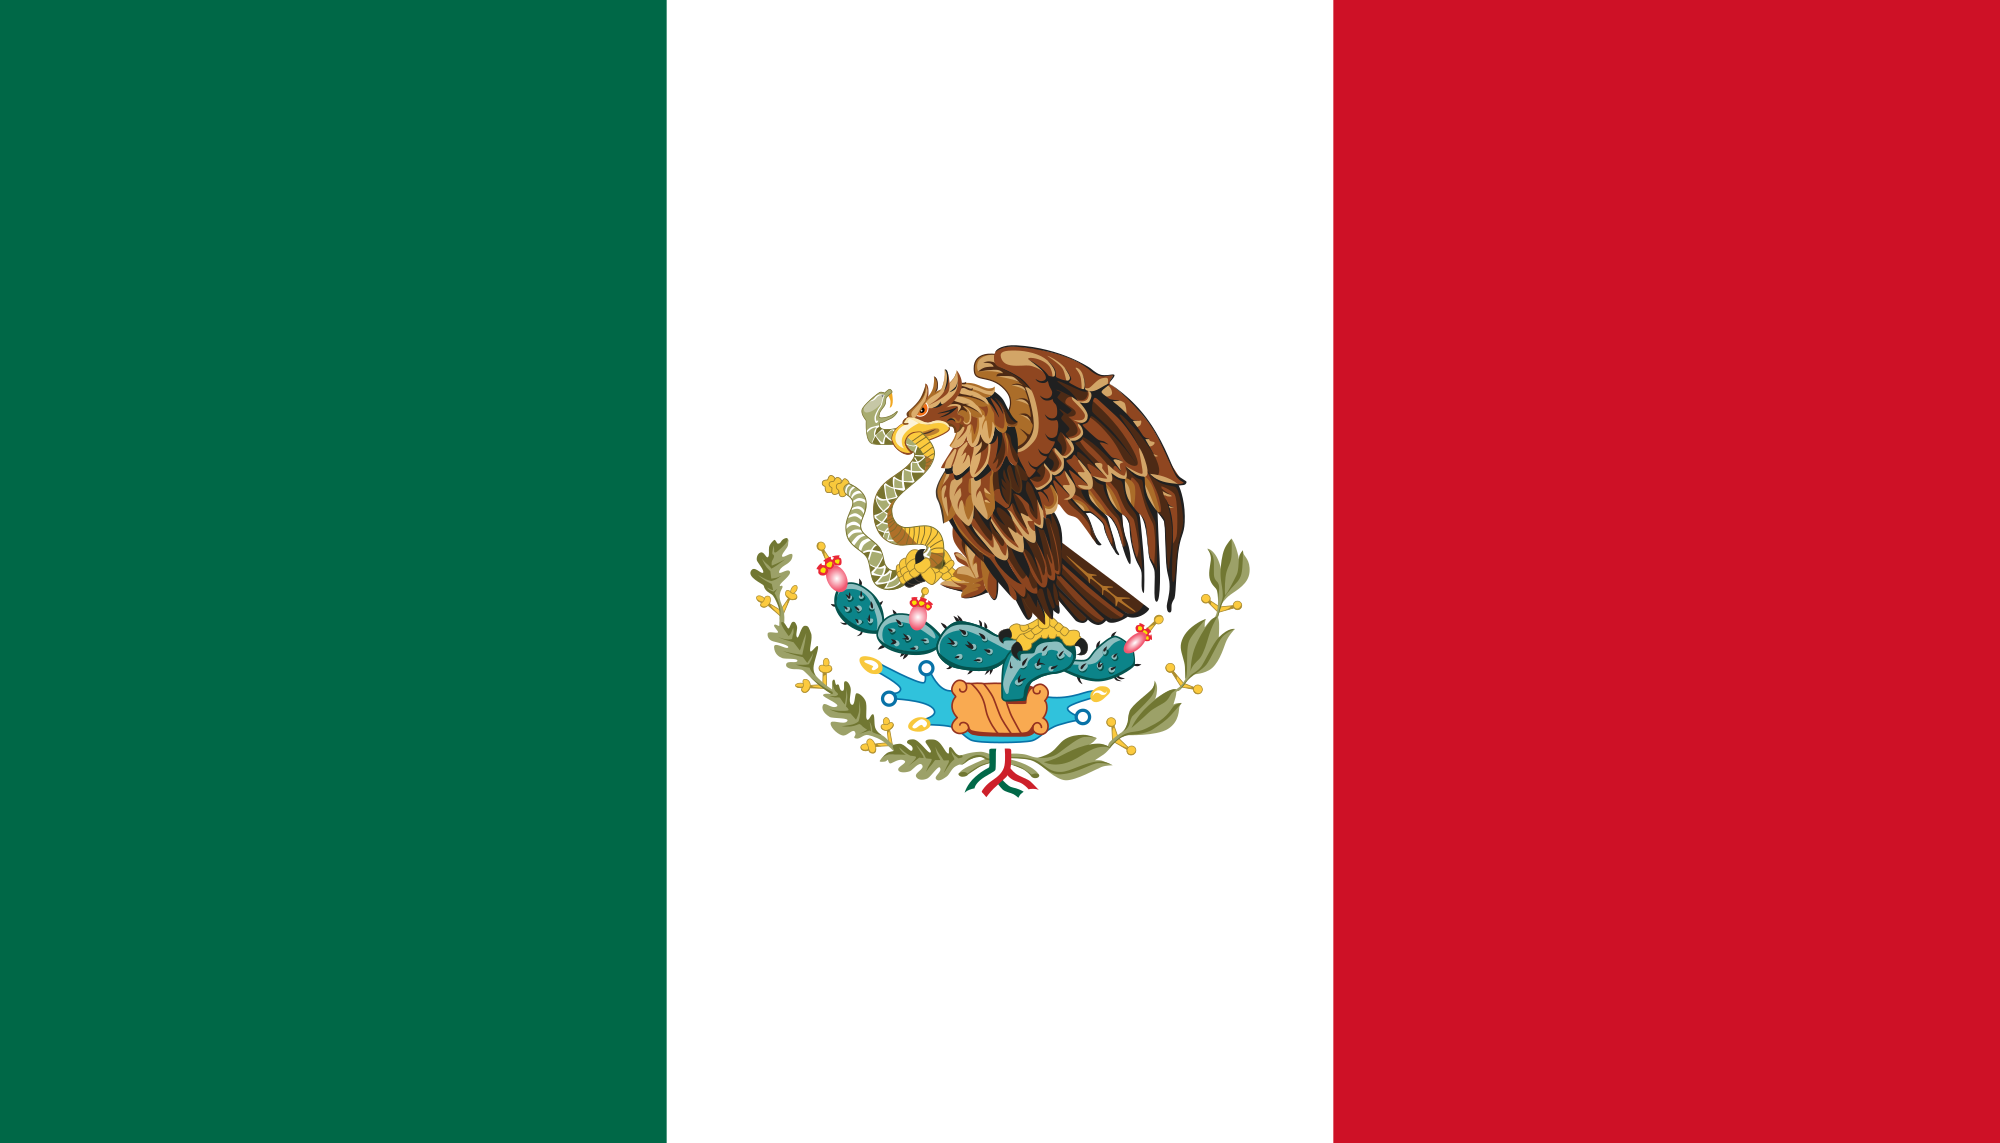 Native Speaker Spanisch (Mexikanisch MX) - Flagge